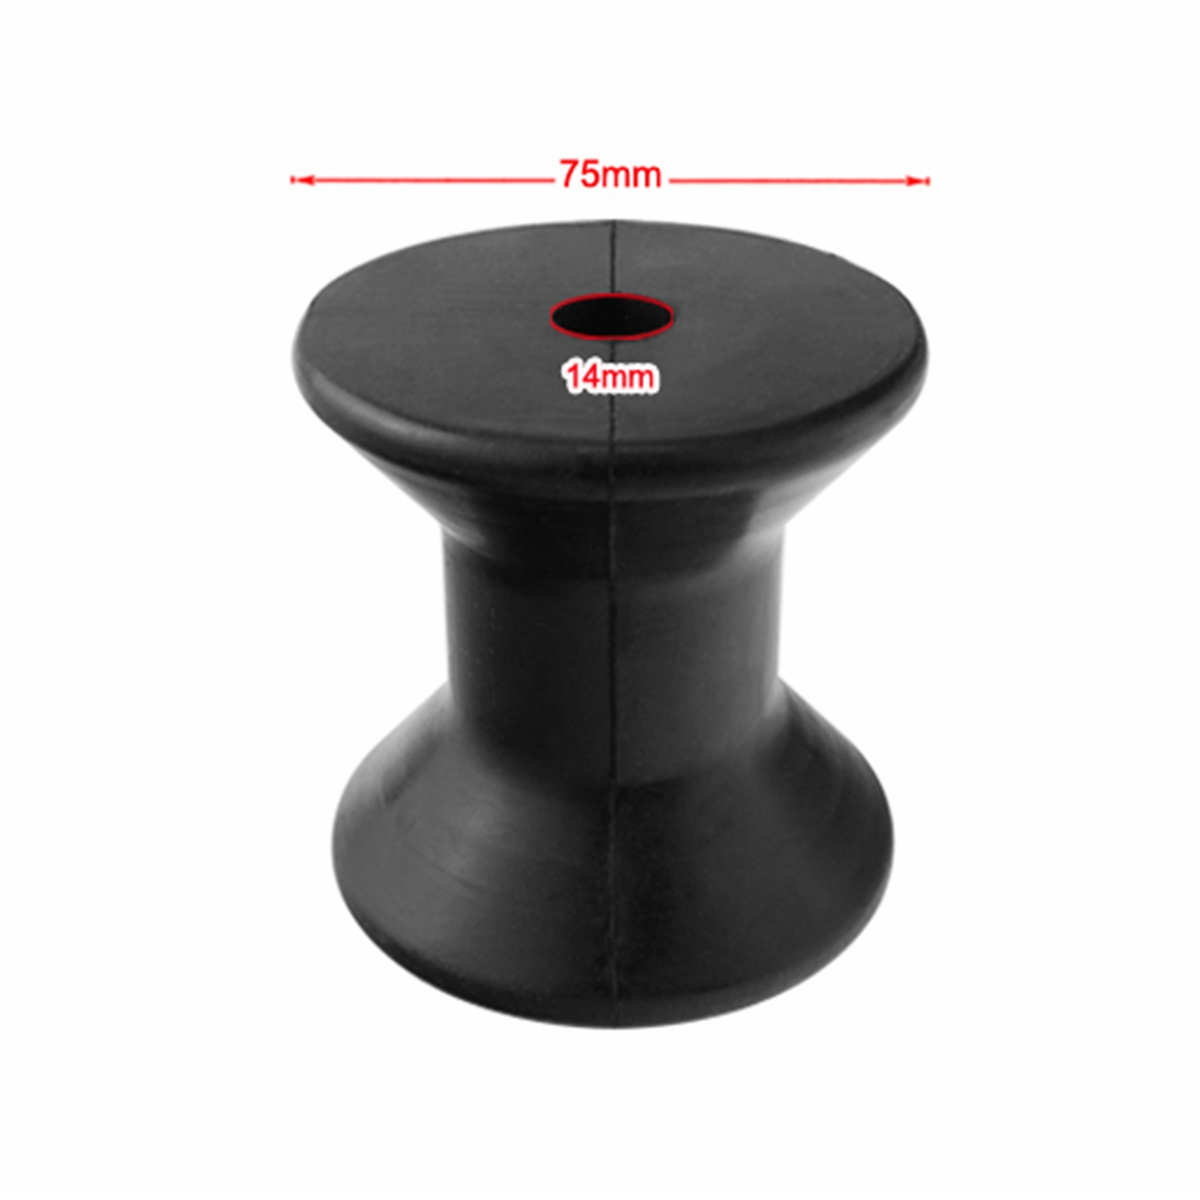 BSET MATEL Anti-UV Wheel 3inch Mounting Width Boat trailer Bow Stop Roller Black Rubber Spool Boat Yacht Marine Accessories